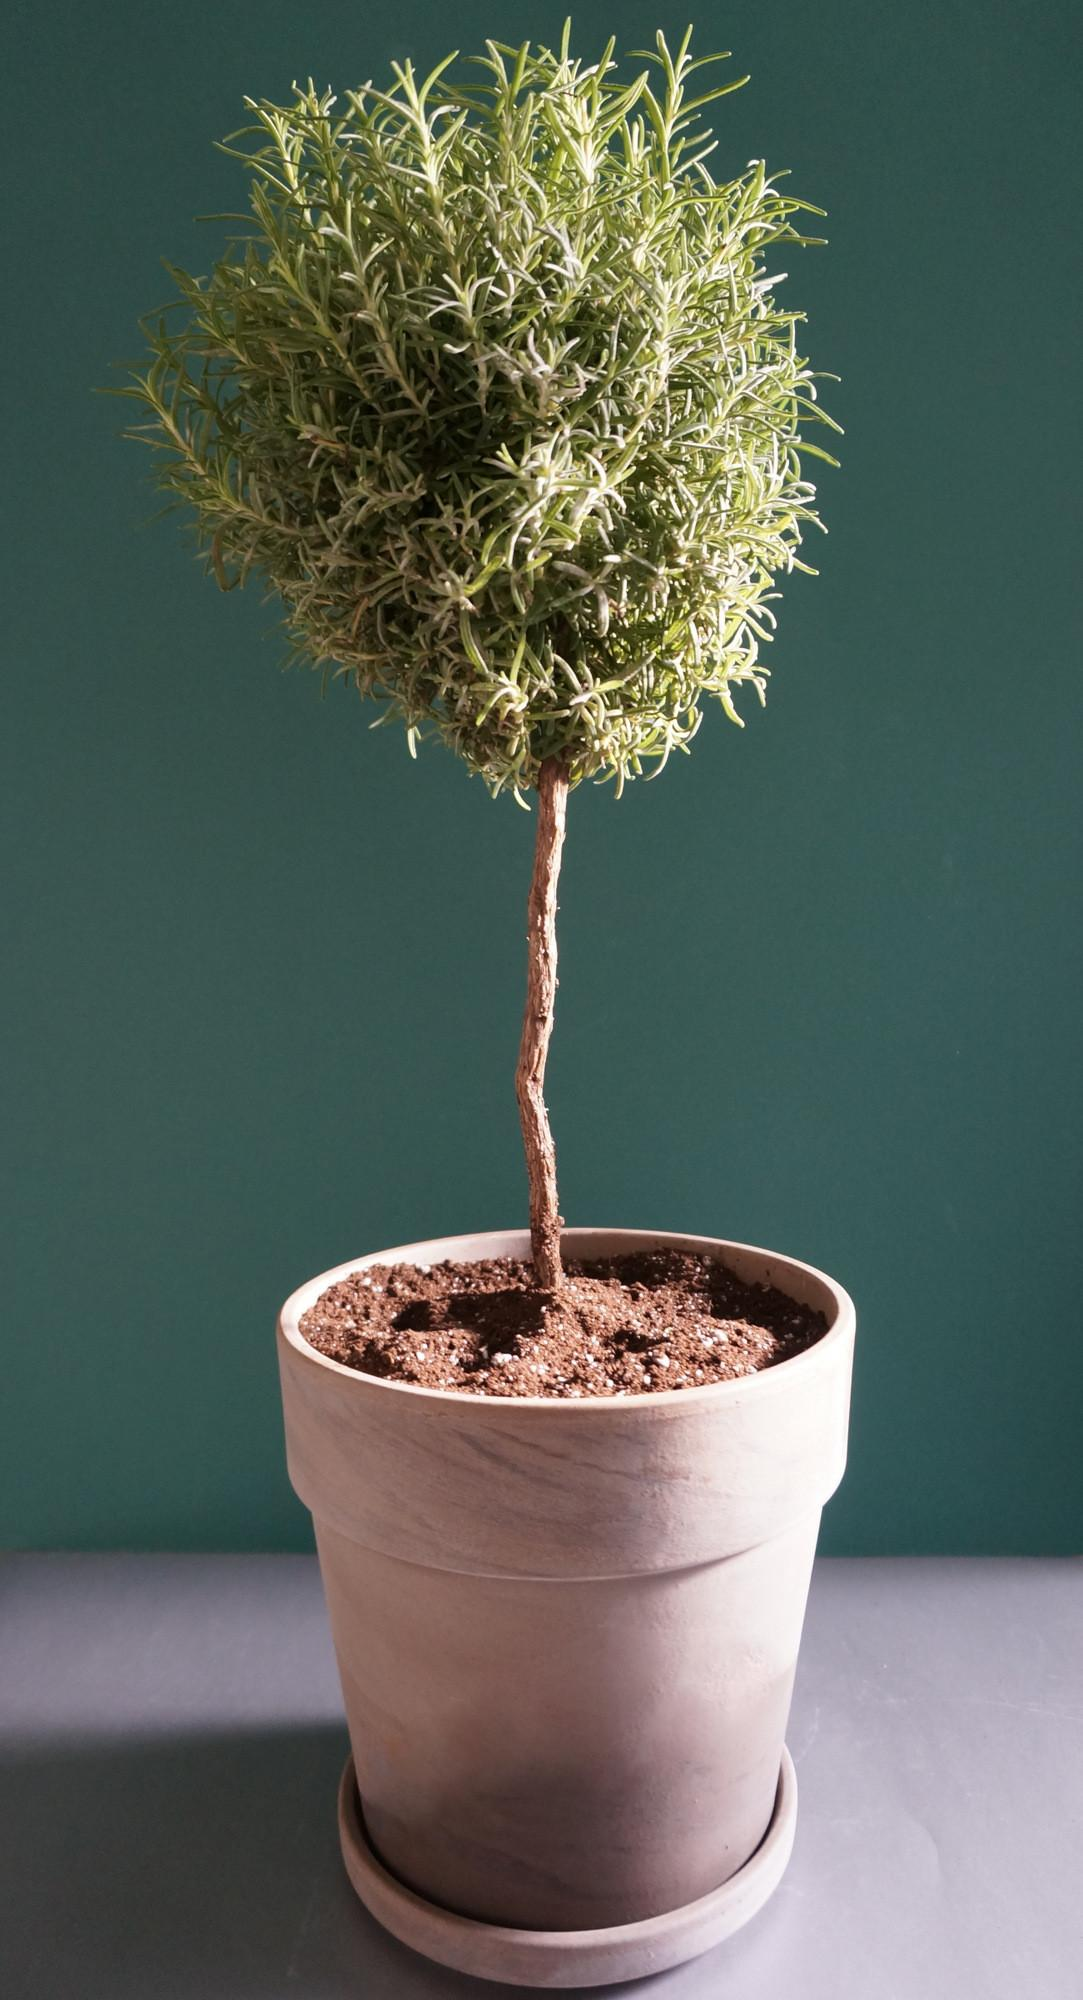 Potted Topiary Tips Maximize Greenery